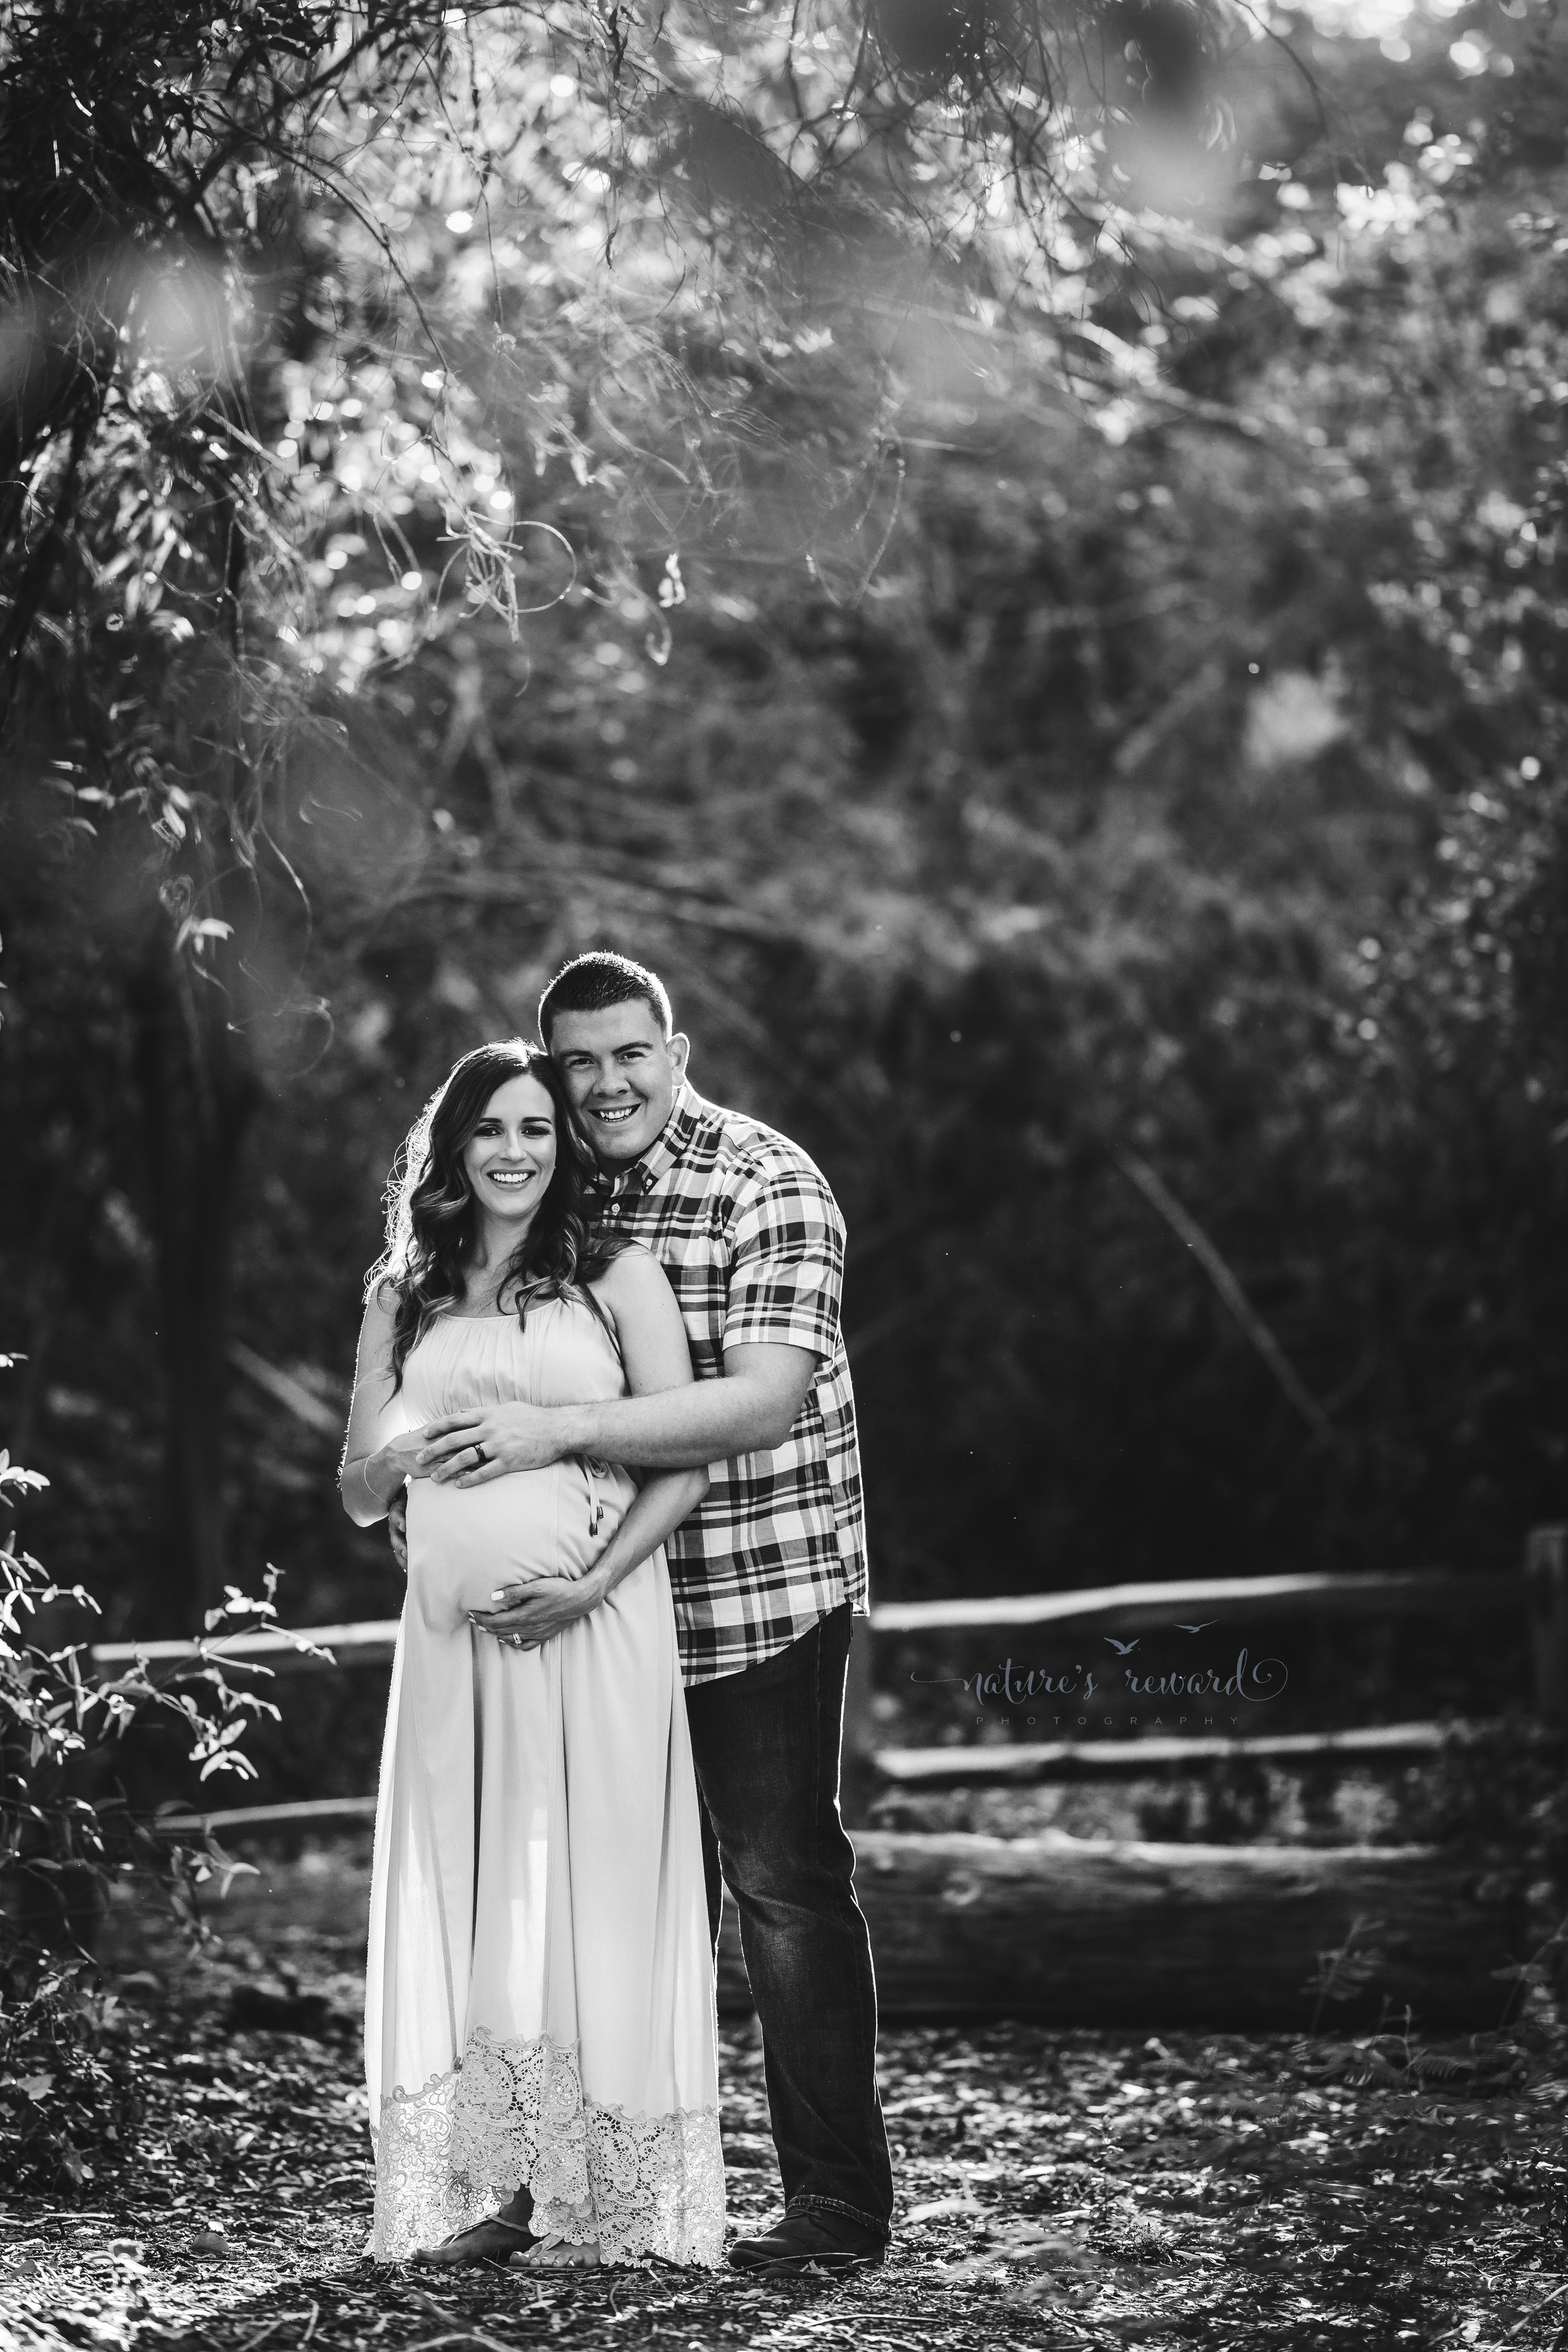 Beautiful expecting mother in a blue maternity gown with her husband in jeans and a blue plaid button down shirt in beautiful light in a park setting in this maternity black and white portrait taken by Nature's Reward Photography.